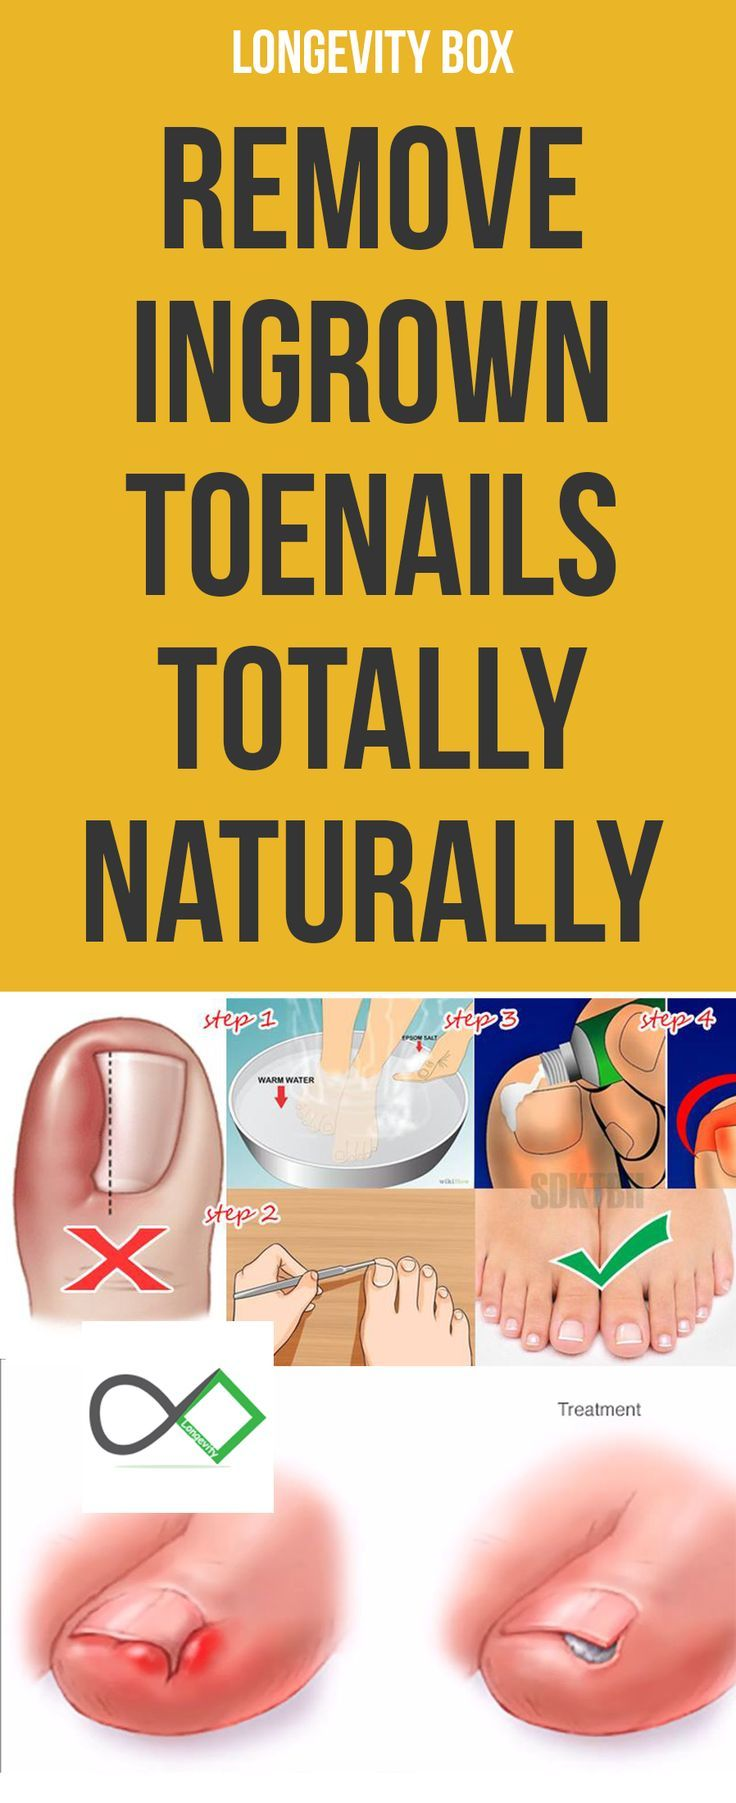 Heres how to get rid of ingrown toenails without surgery